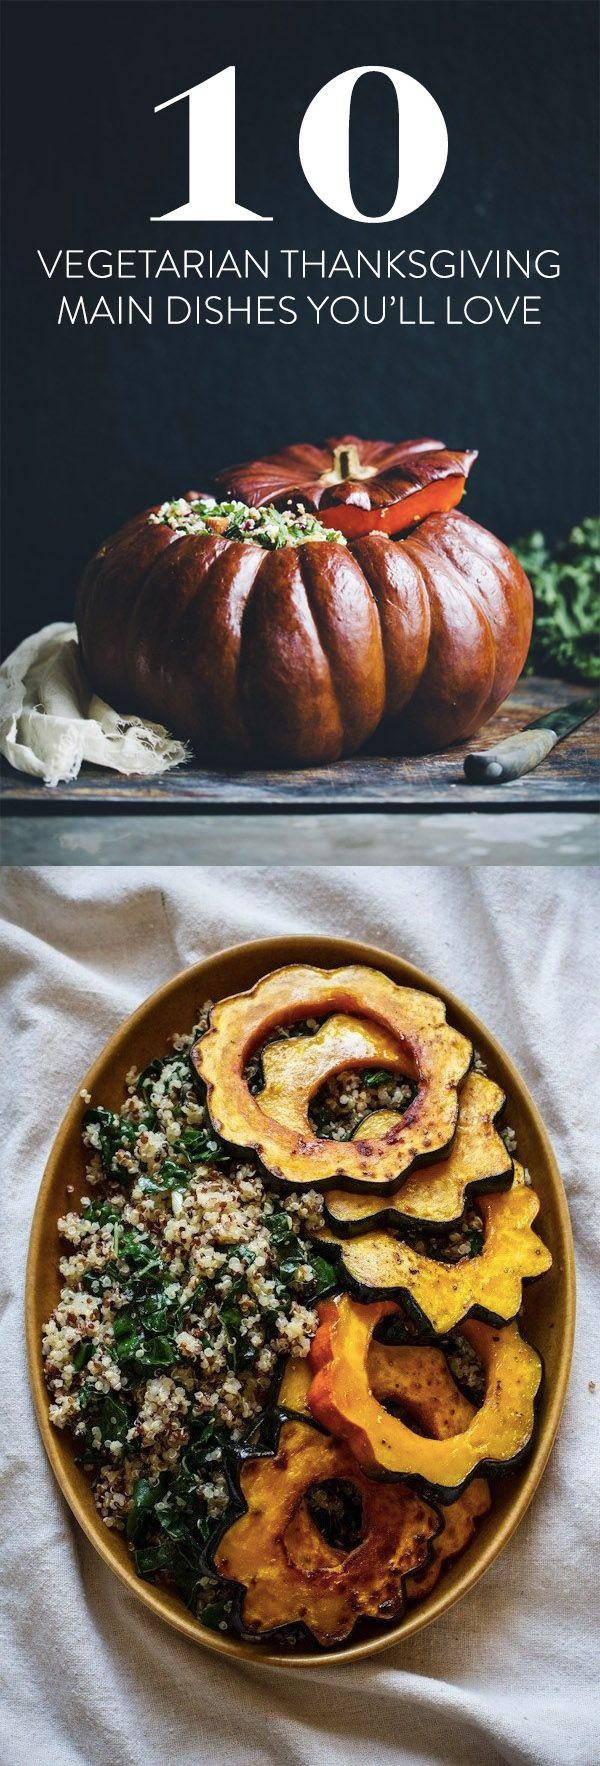 Vegetarian Thanksgiving Main Course  Best 25 Thanksgiving ve ables ideas on Pinterest